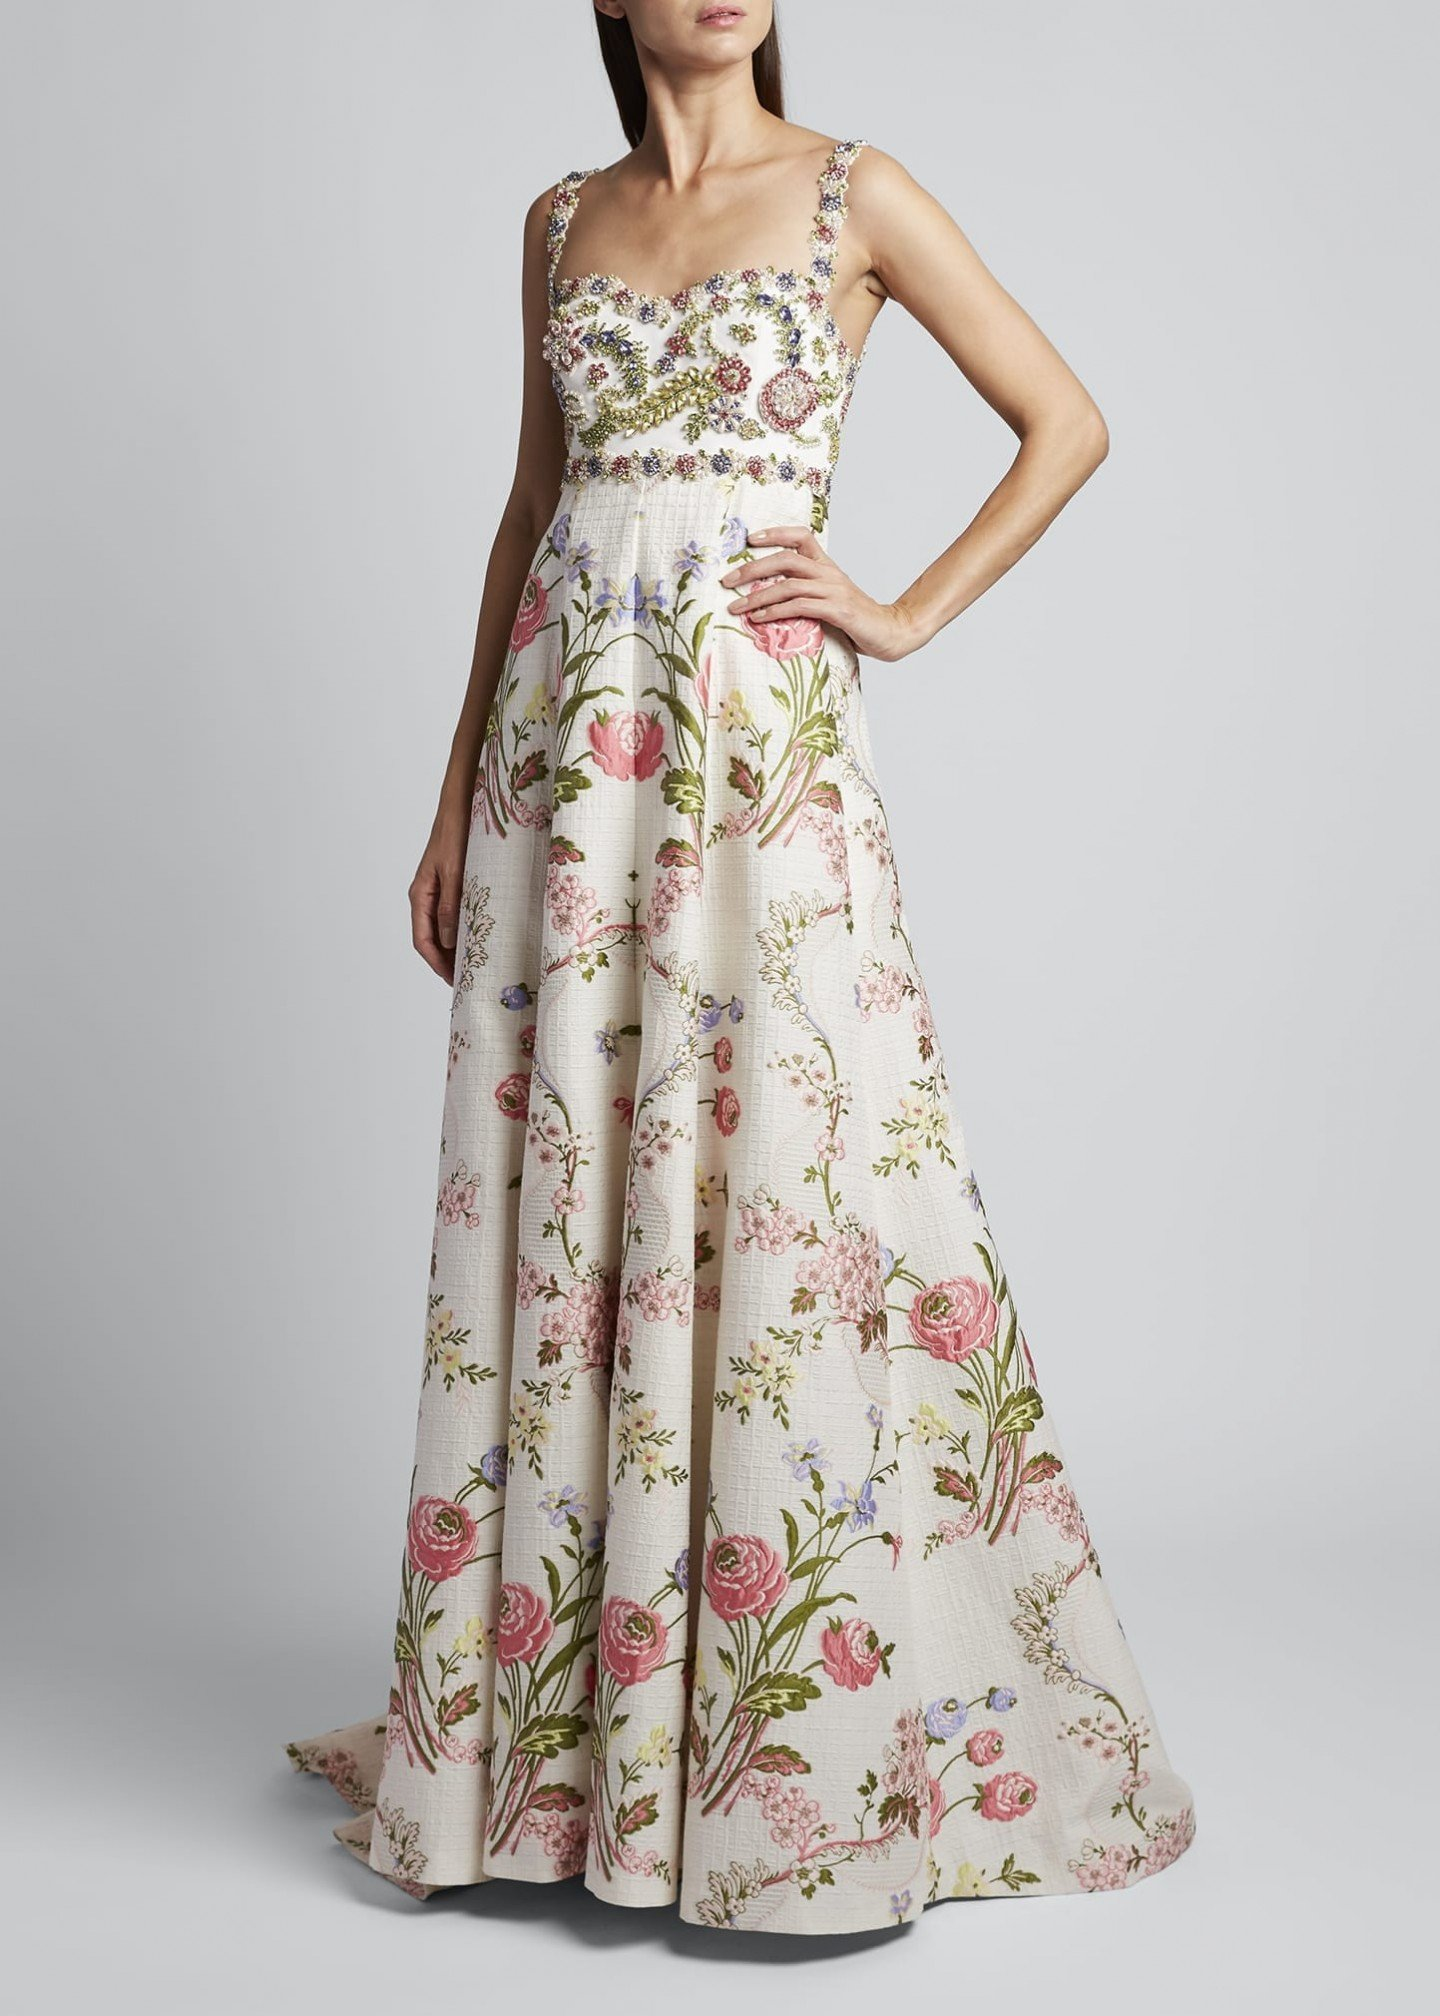 ANDREW GN Spaghetti Strap Floral Gown